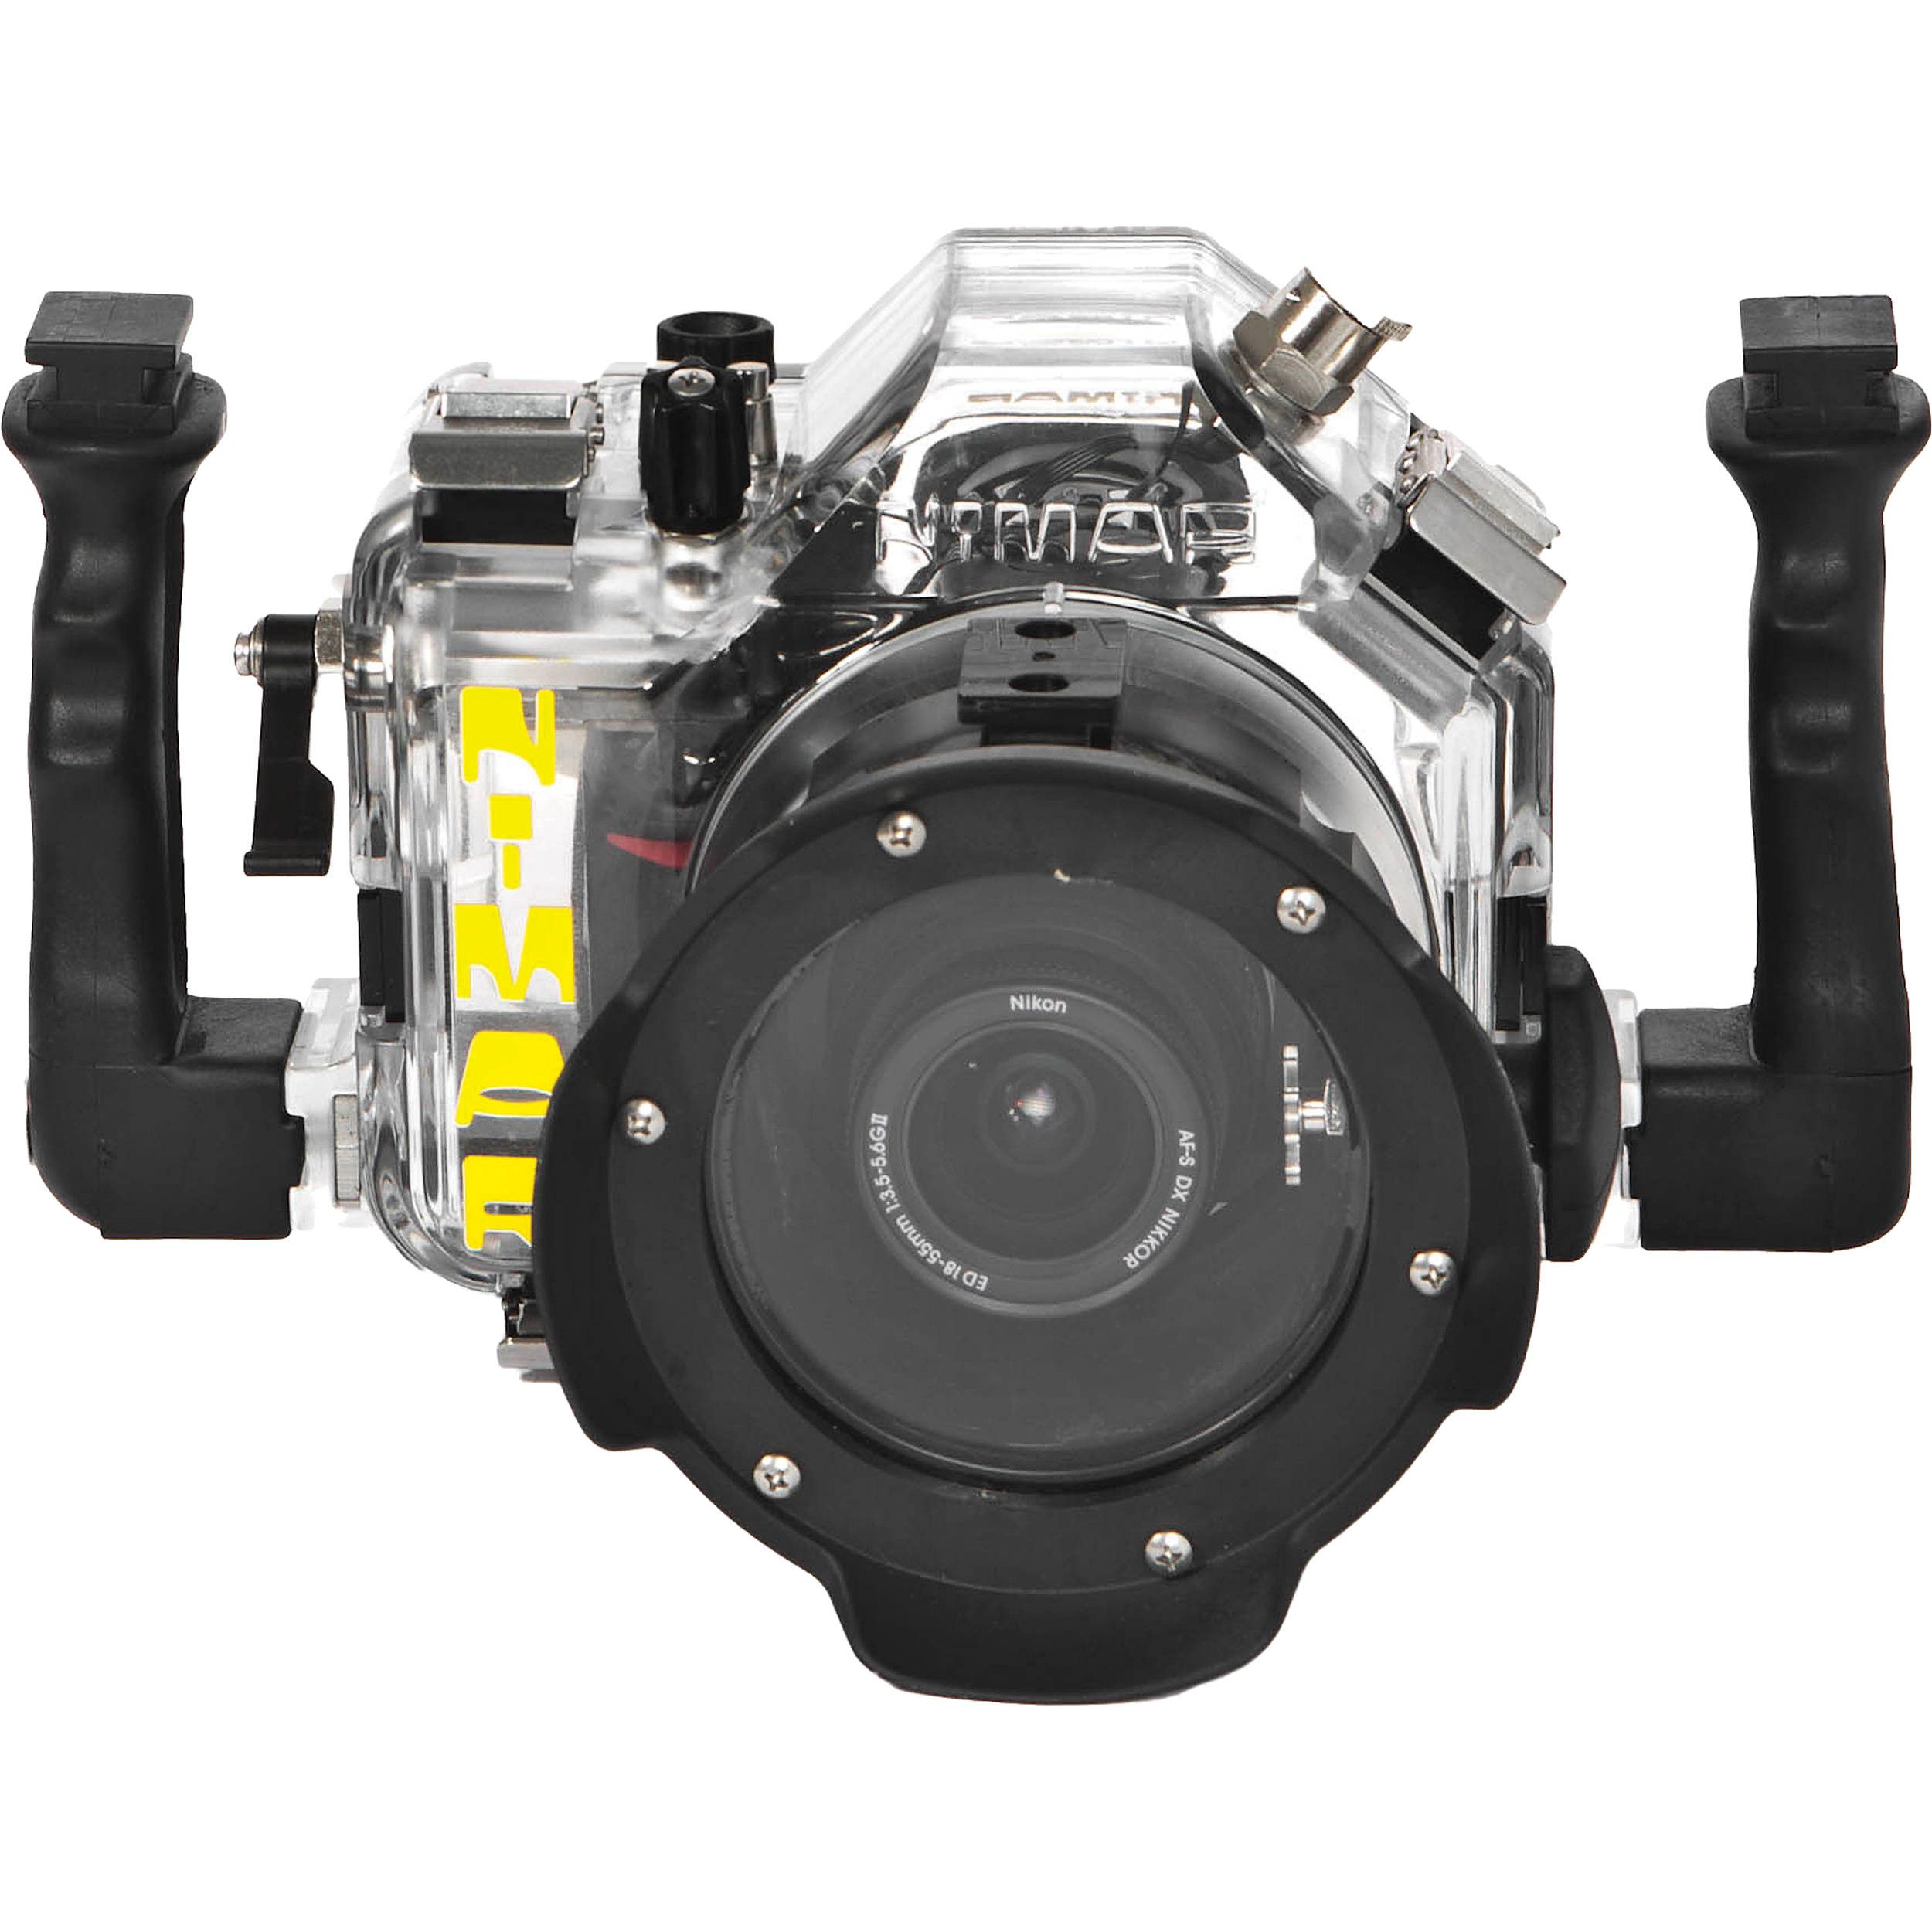 Camera Dslr Camera Without Lens nimar underwater housing for nikon d3000 dslr camera nid3000 bh without lens port shown with optional accessories